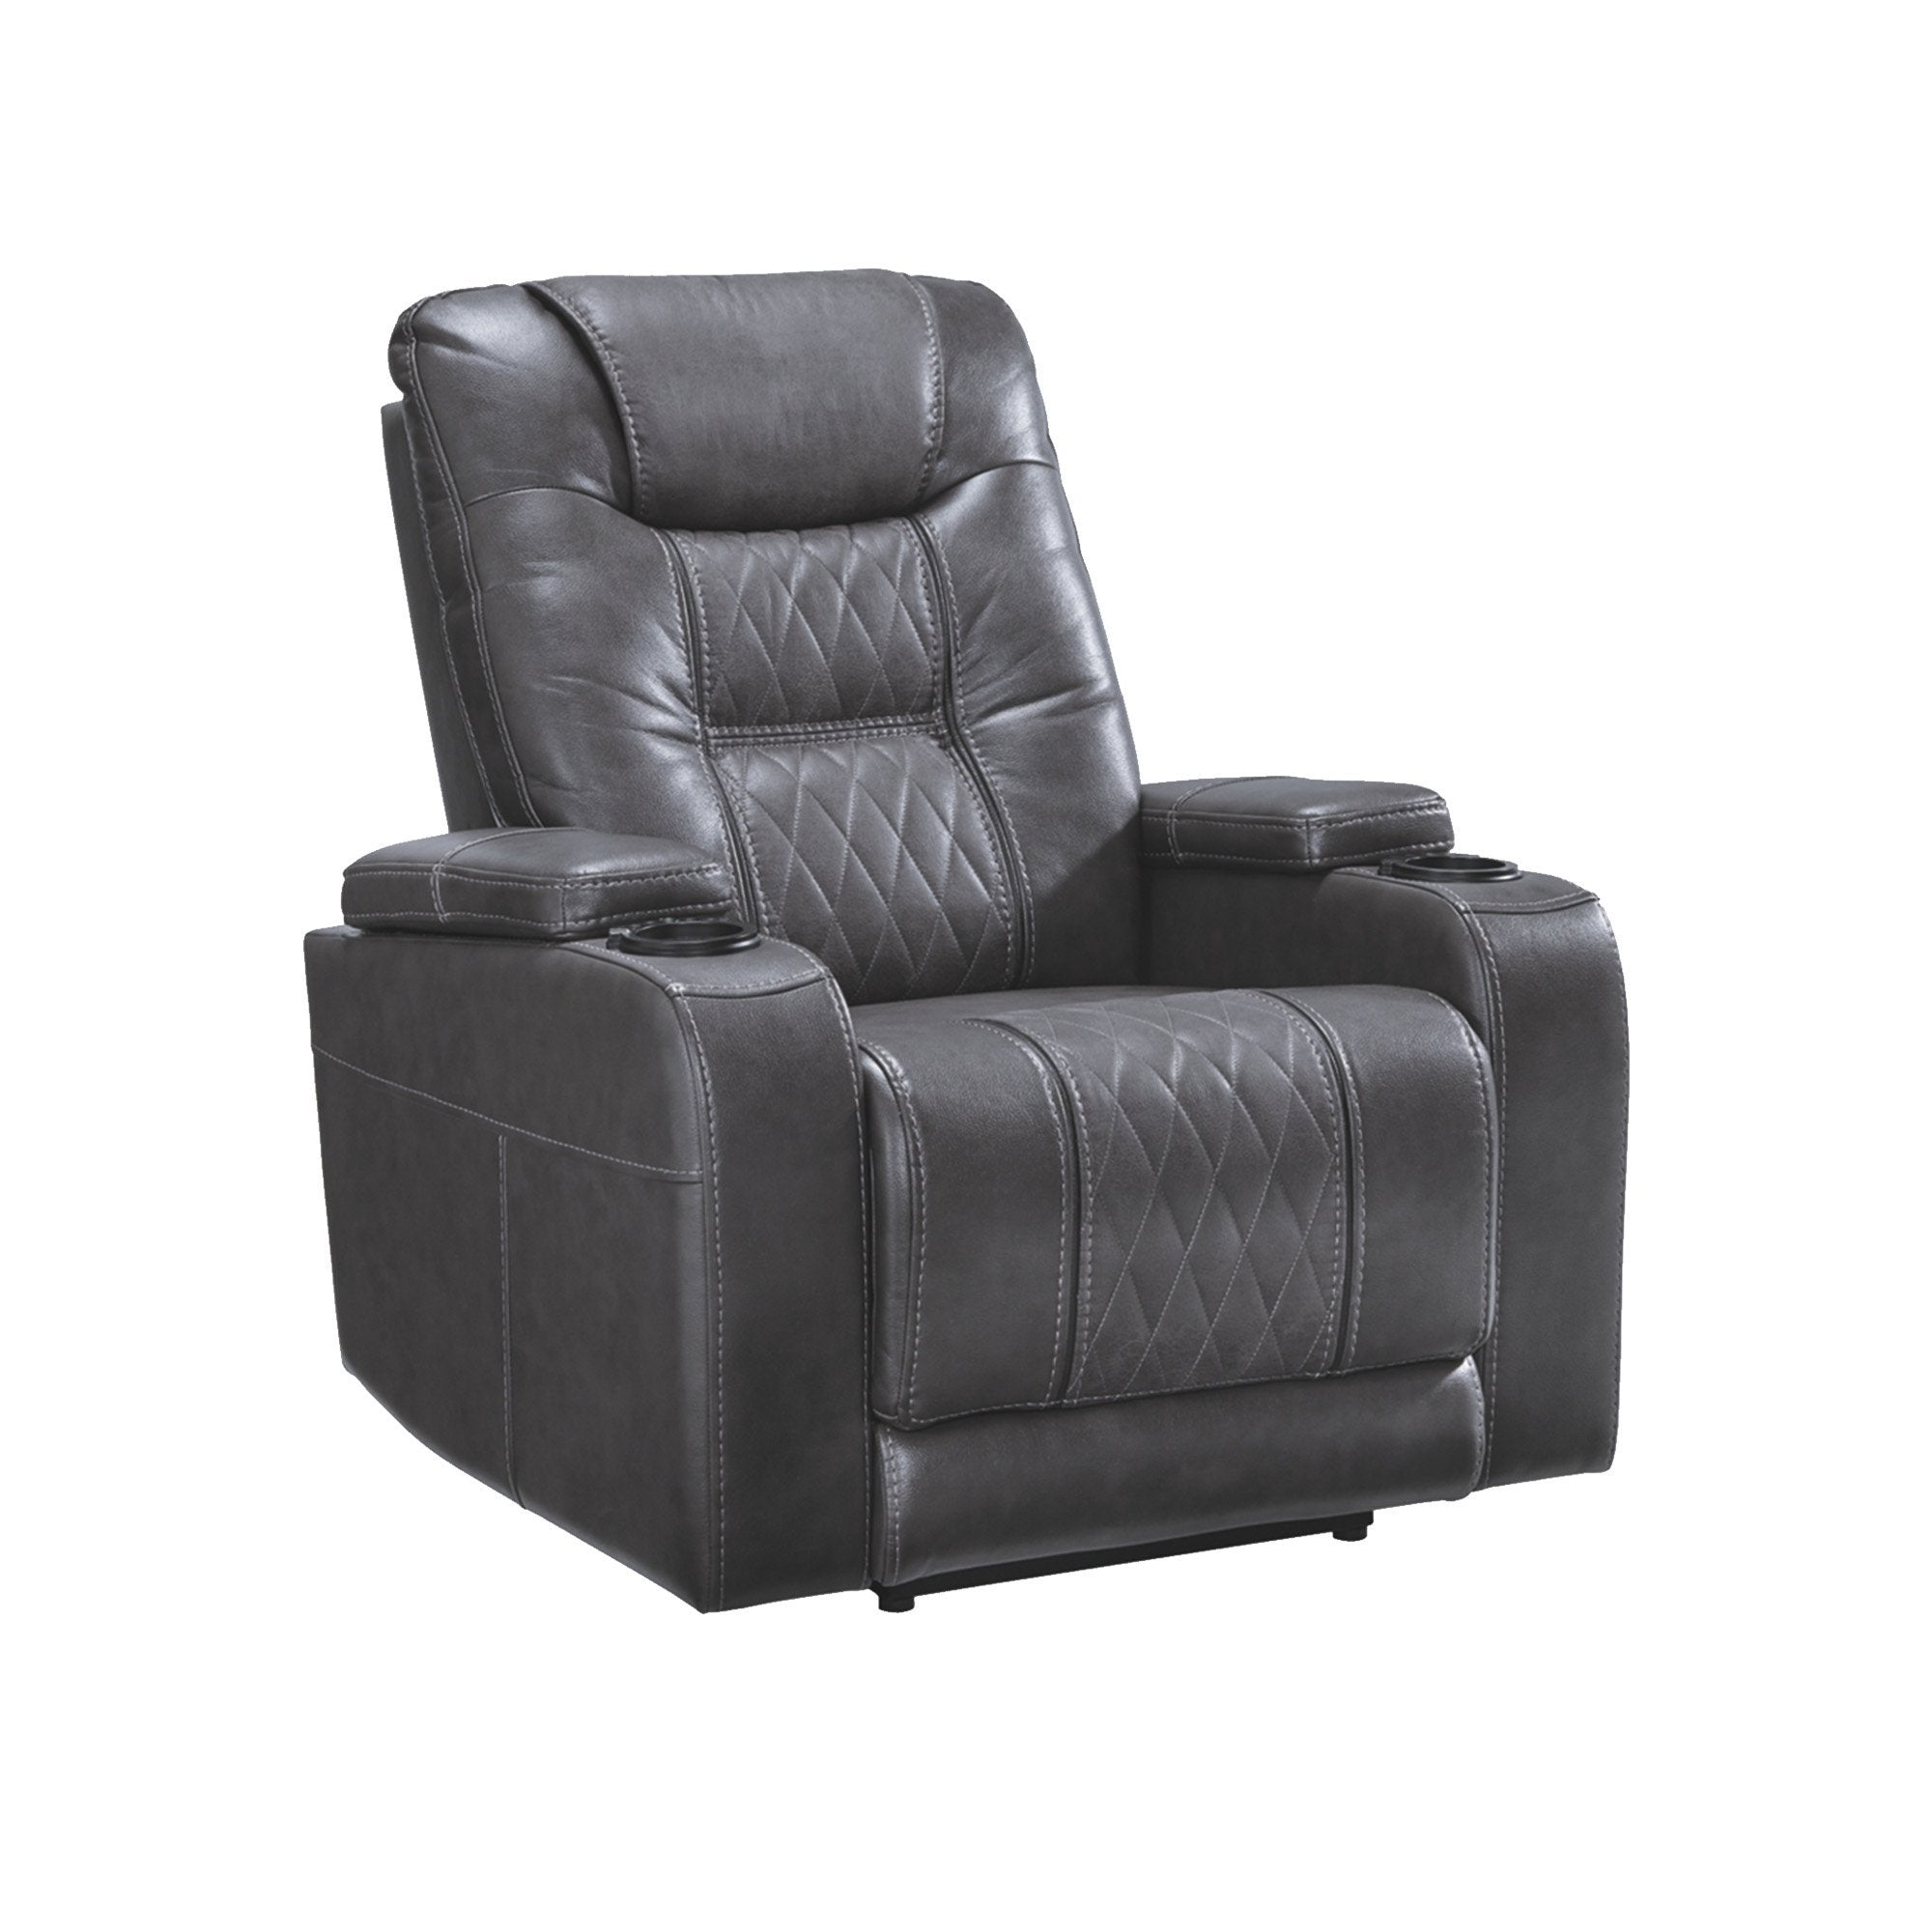 PWR RECLINER by Ashley |  | Showhome Furniture